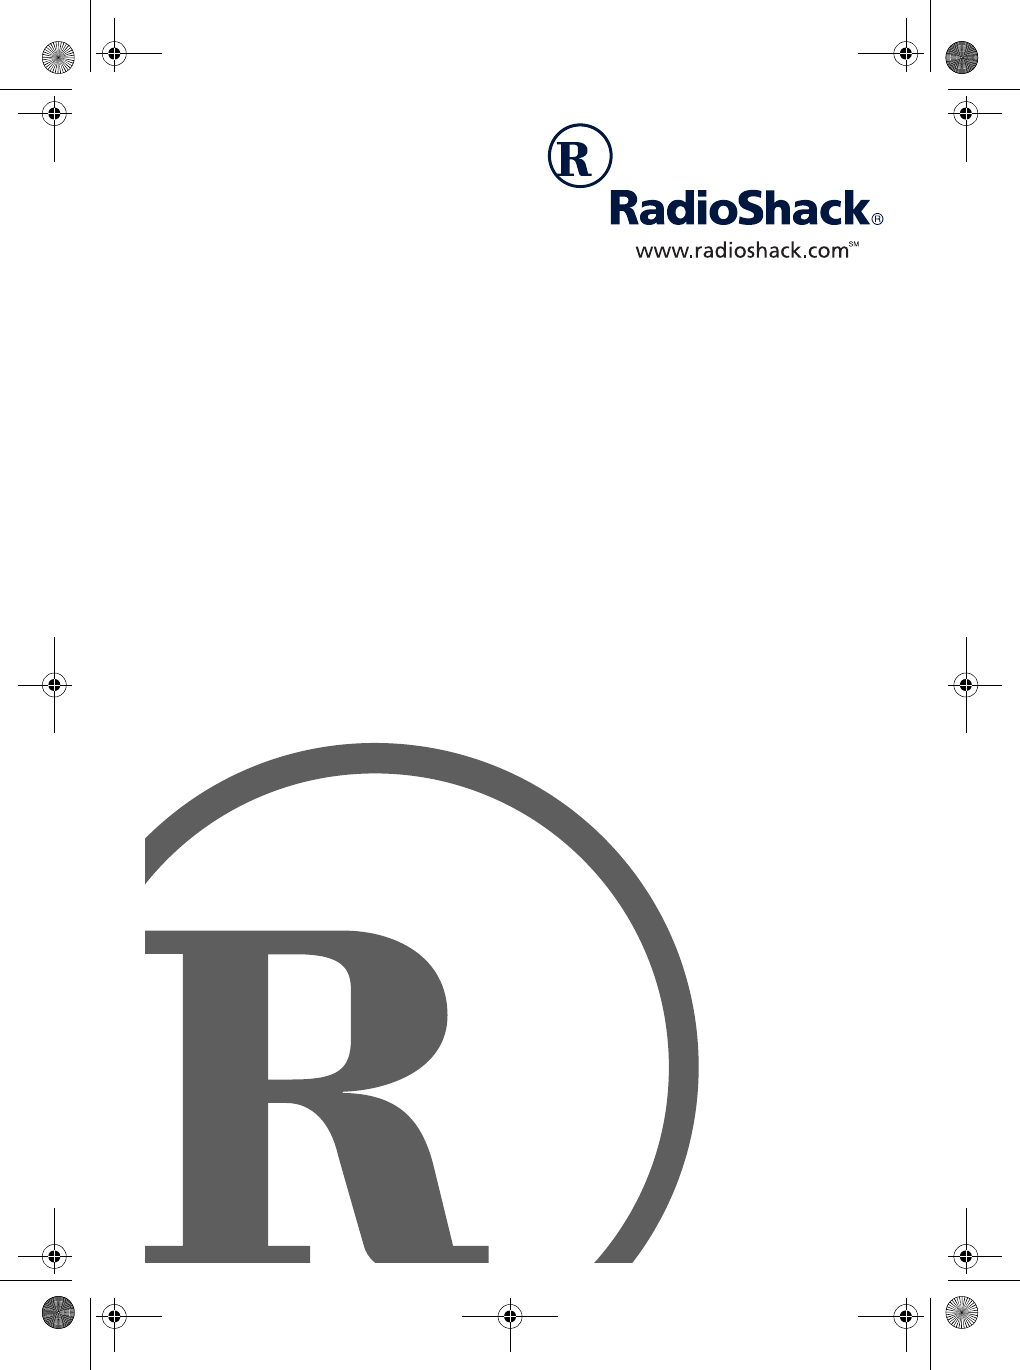 Radio Shack Answering Machine 900 MHz User Guide